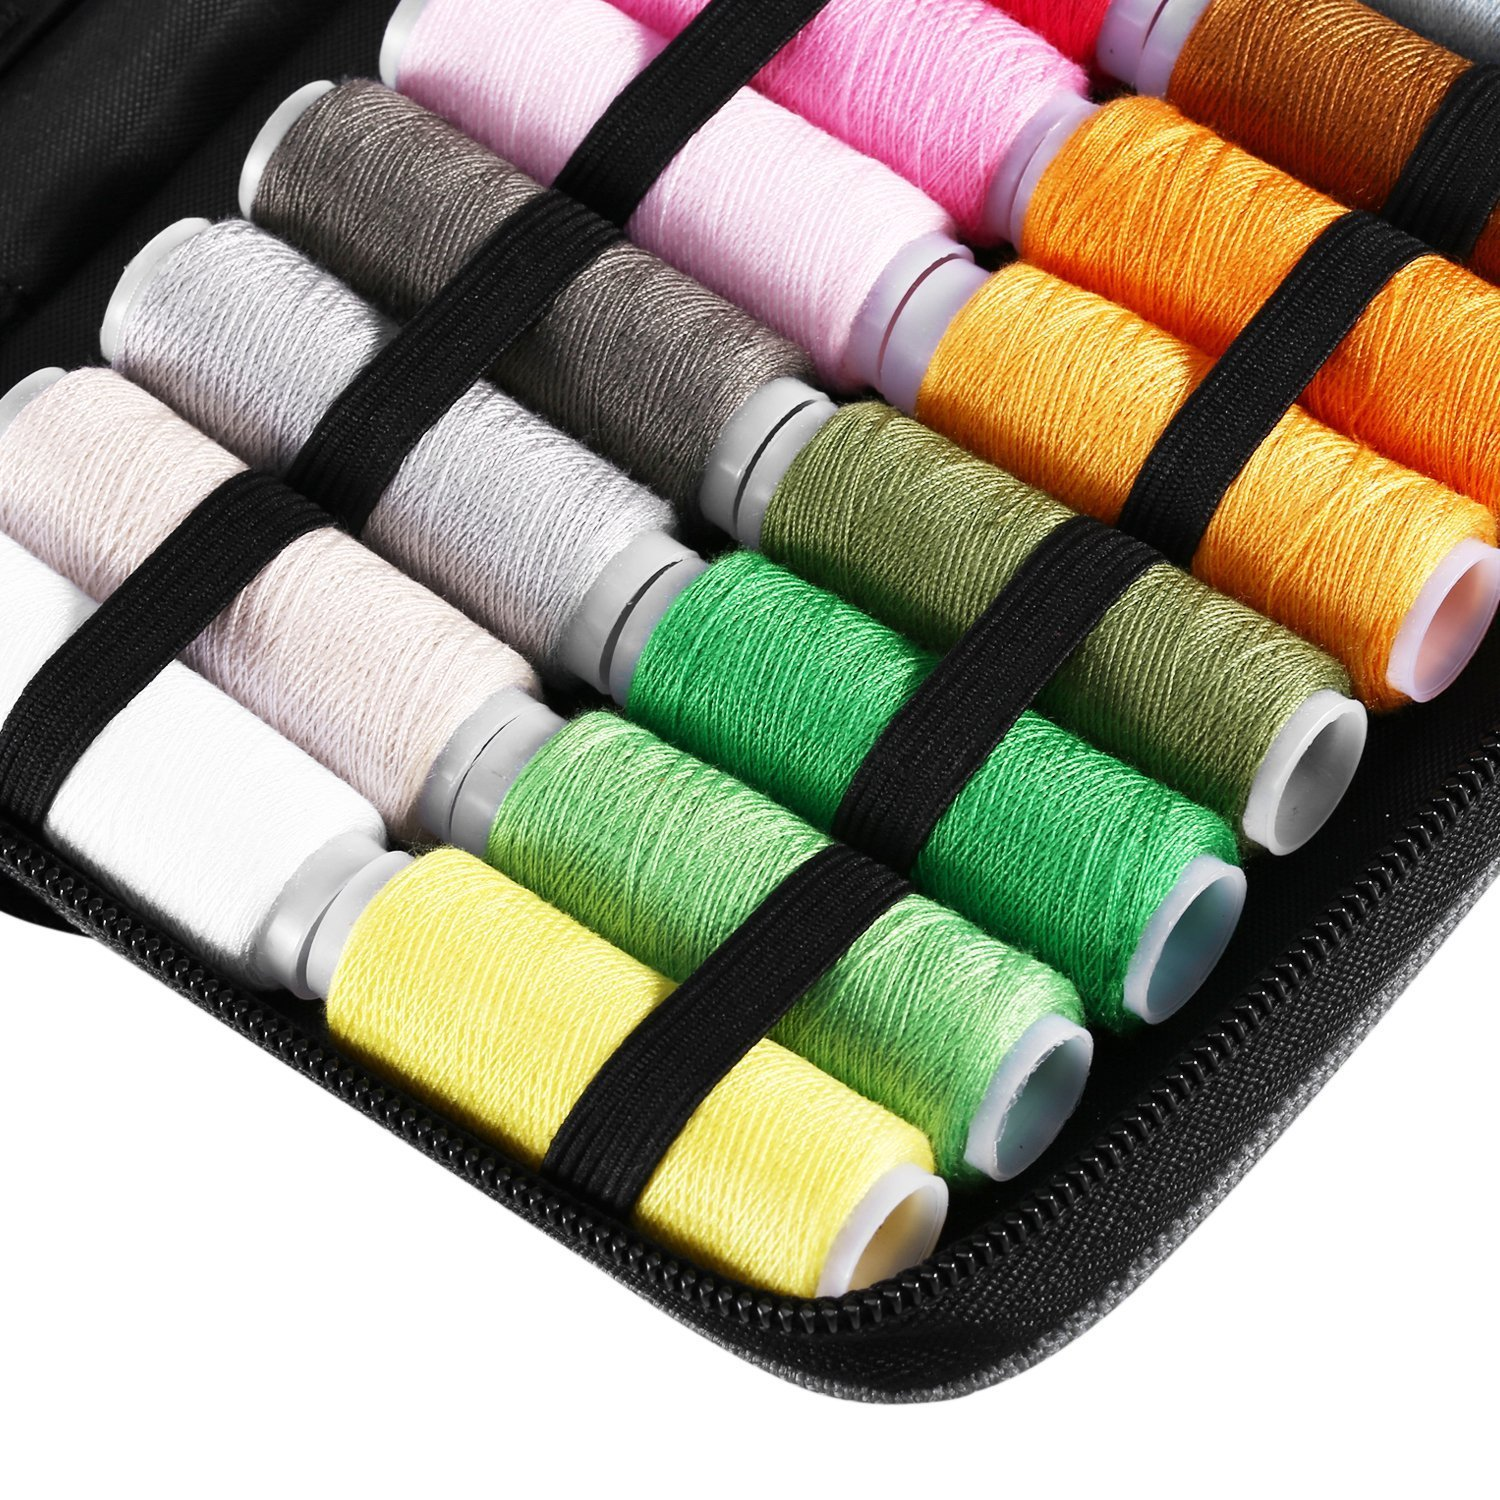 Amazon.com: Innocheer Sewing Kit With 97 Sewing Accessories, 24 ...